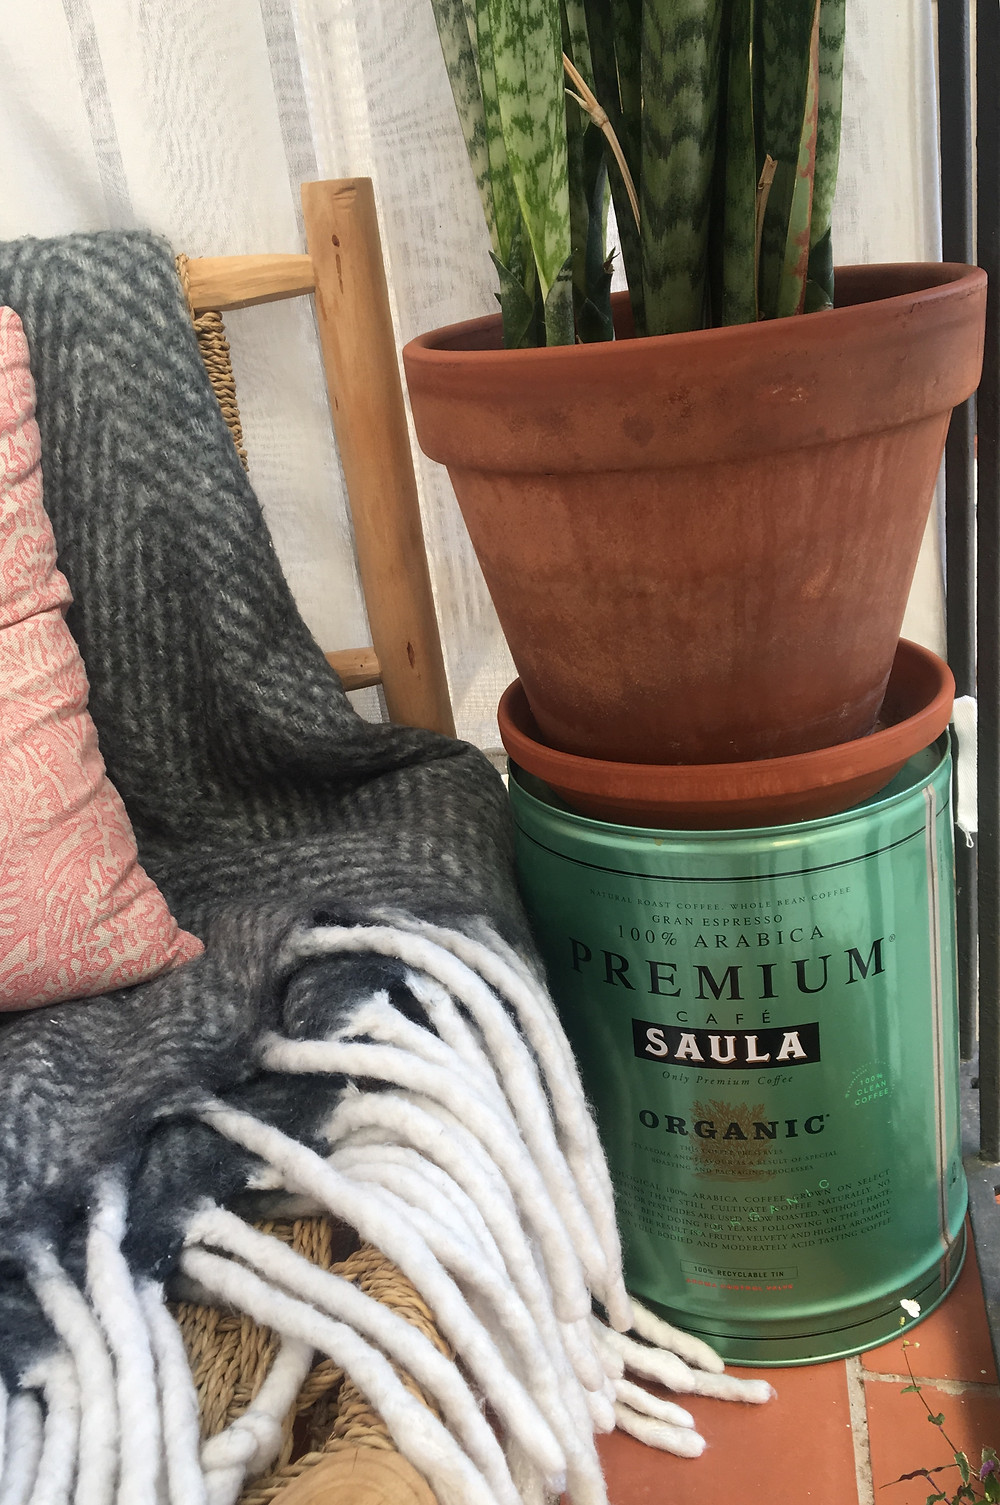 A coffee tin reused as a plant stand